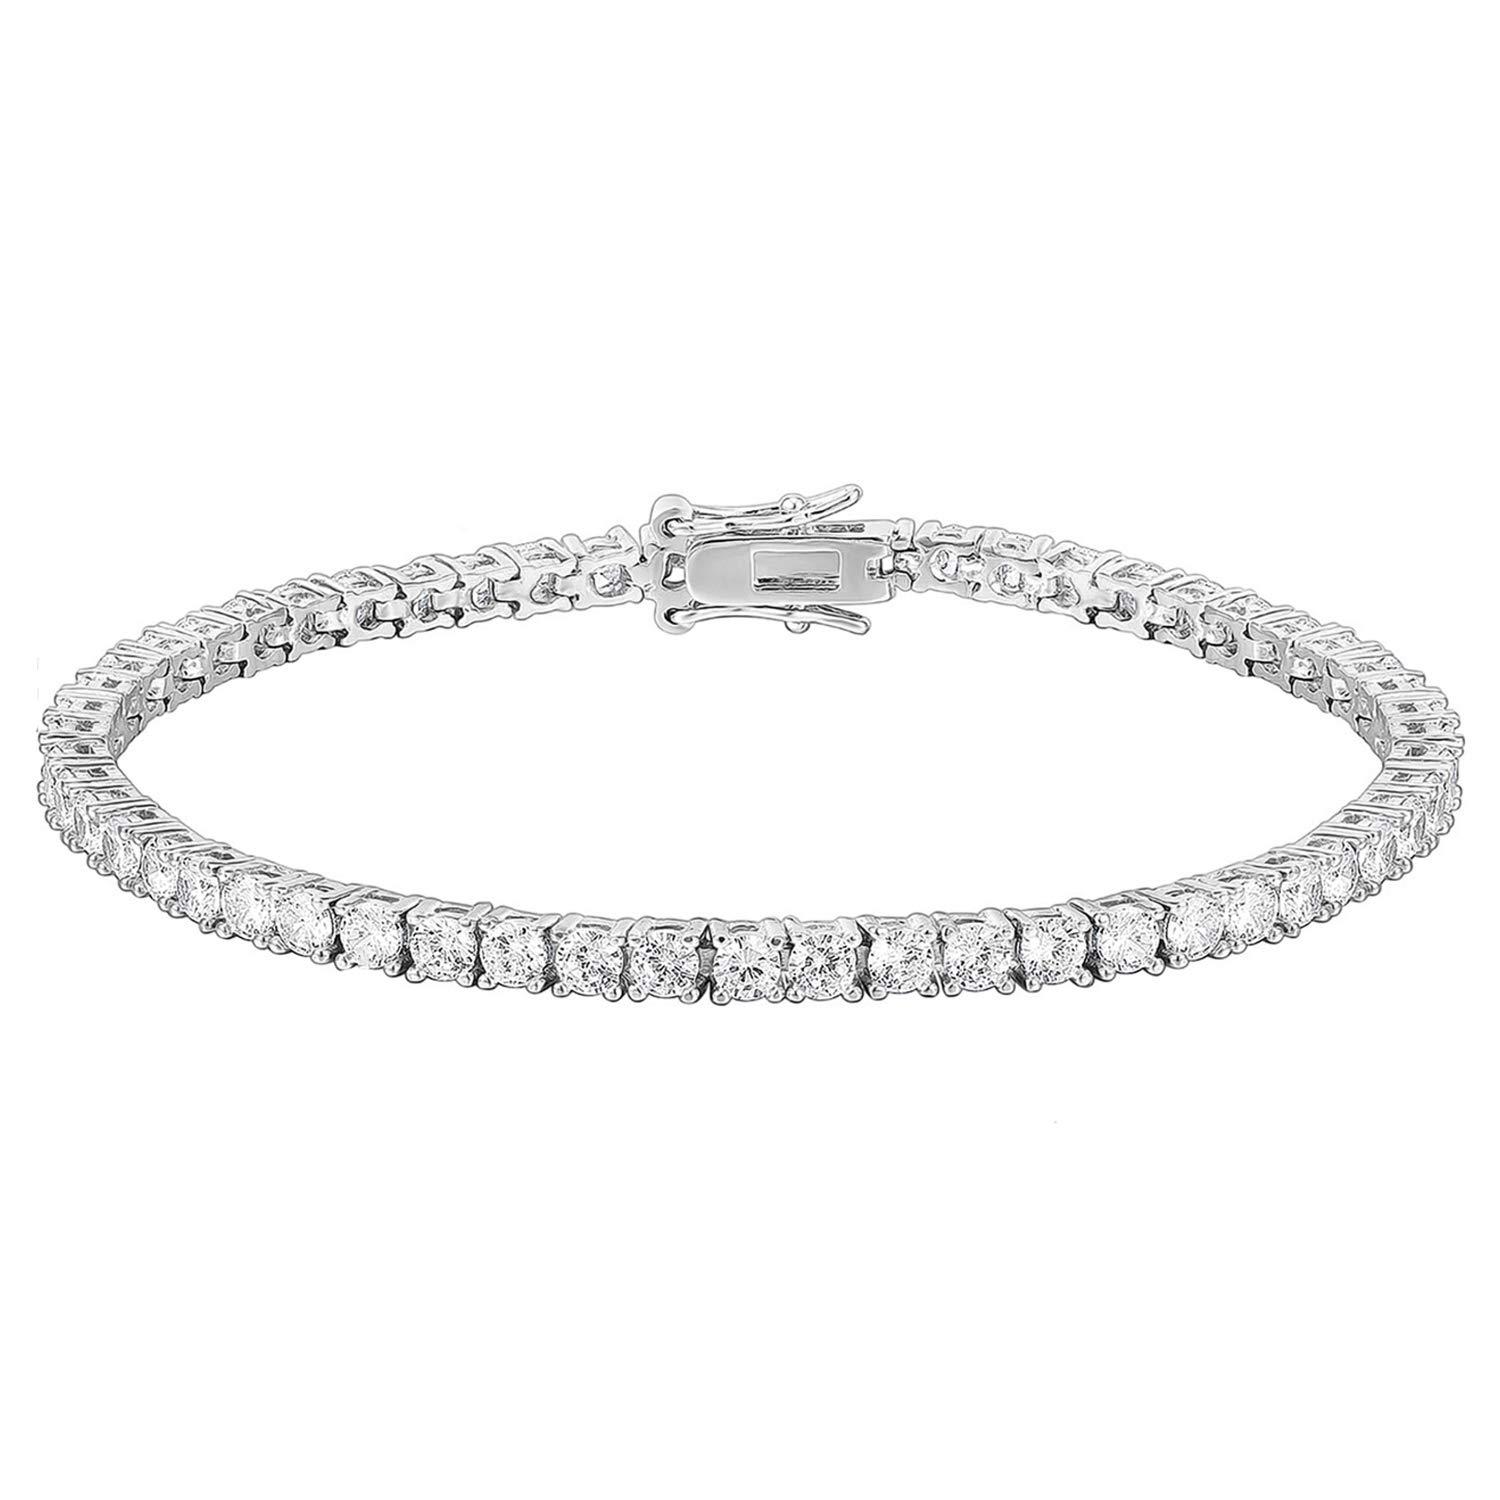 PAVOI 14K Gold Plated Cubic Zirconia Classic Tennis Bracelet | White Gold Bracelets for Women | 6.5 Inches by PAVOI